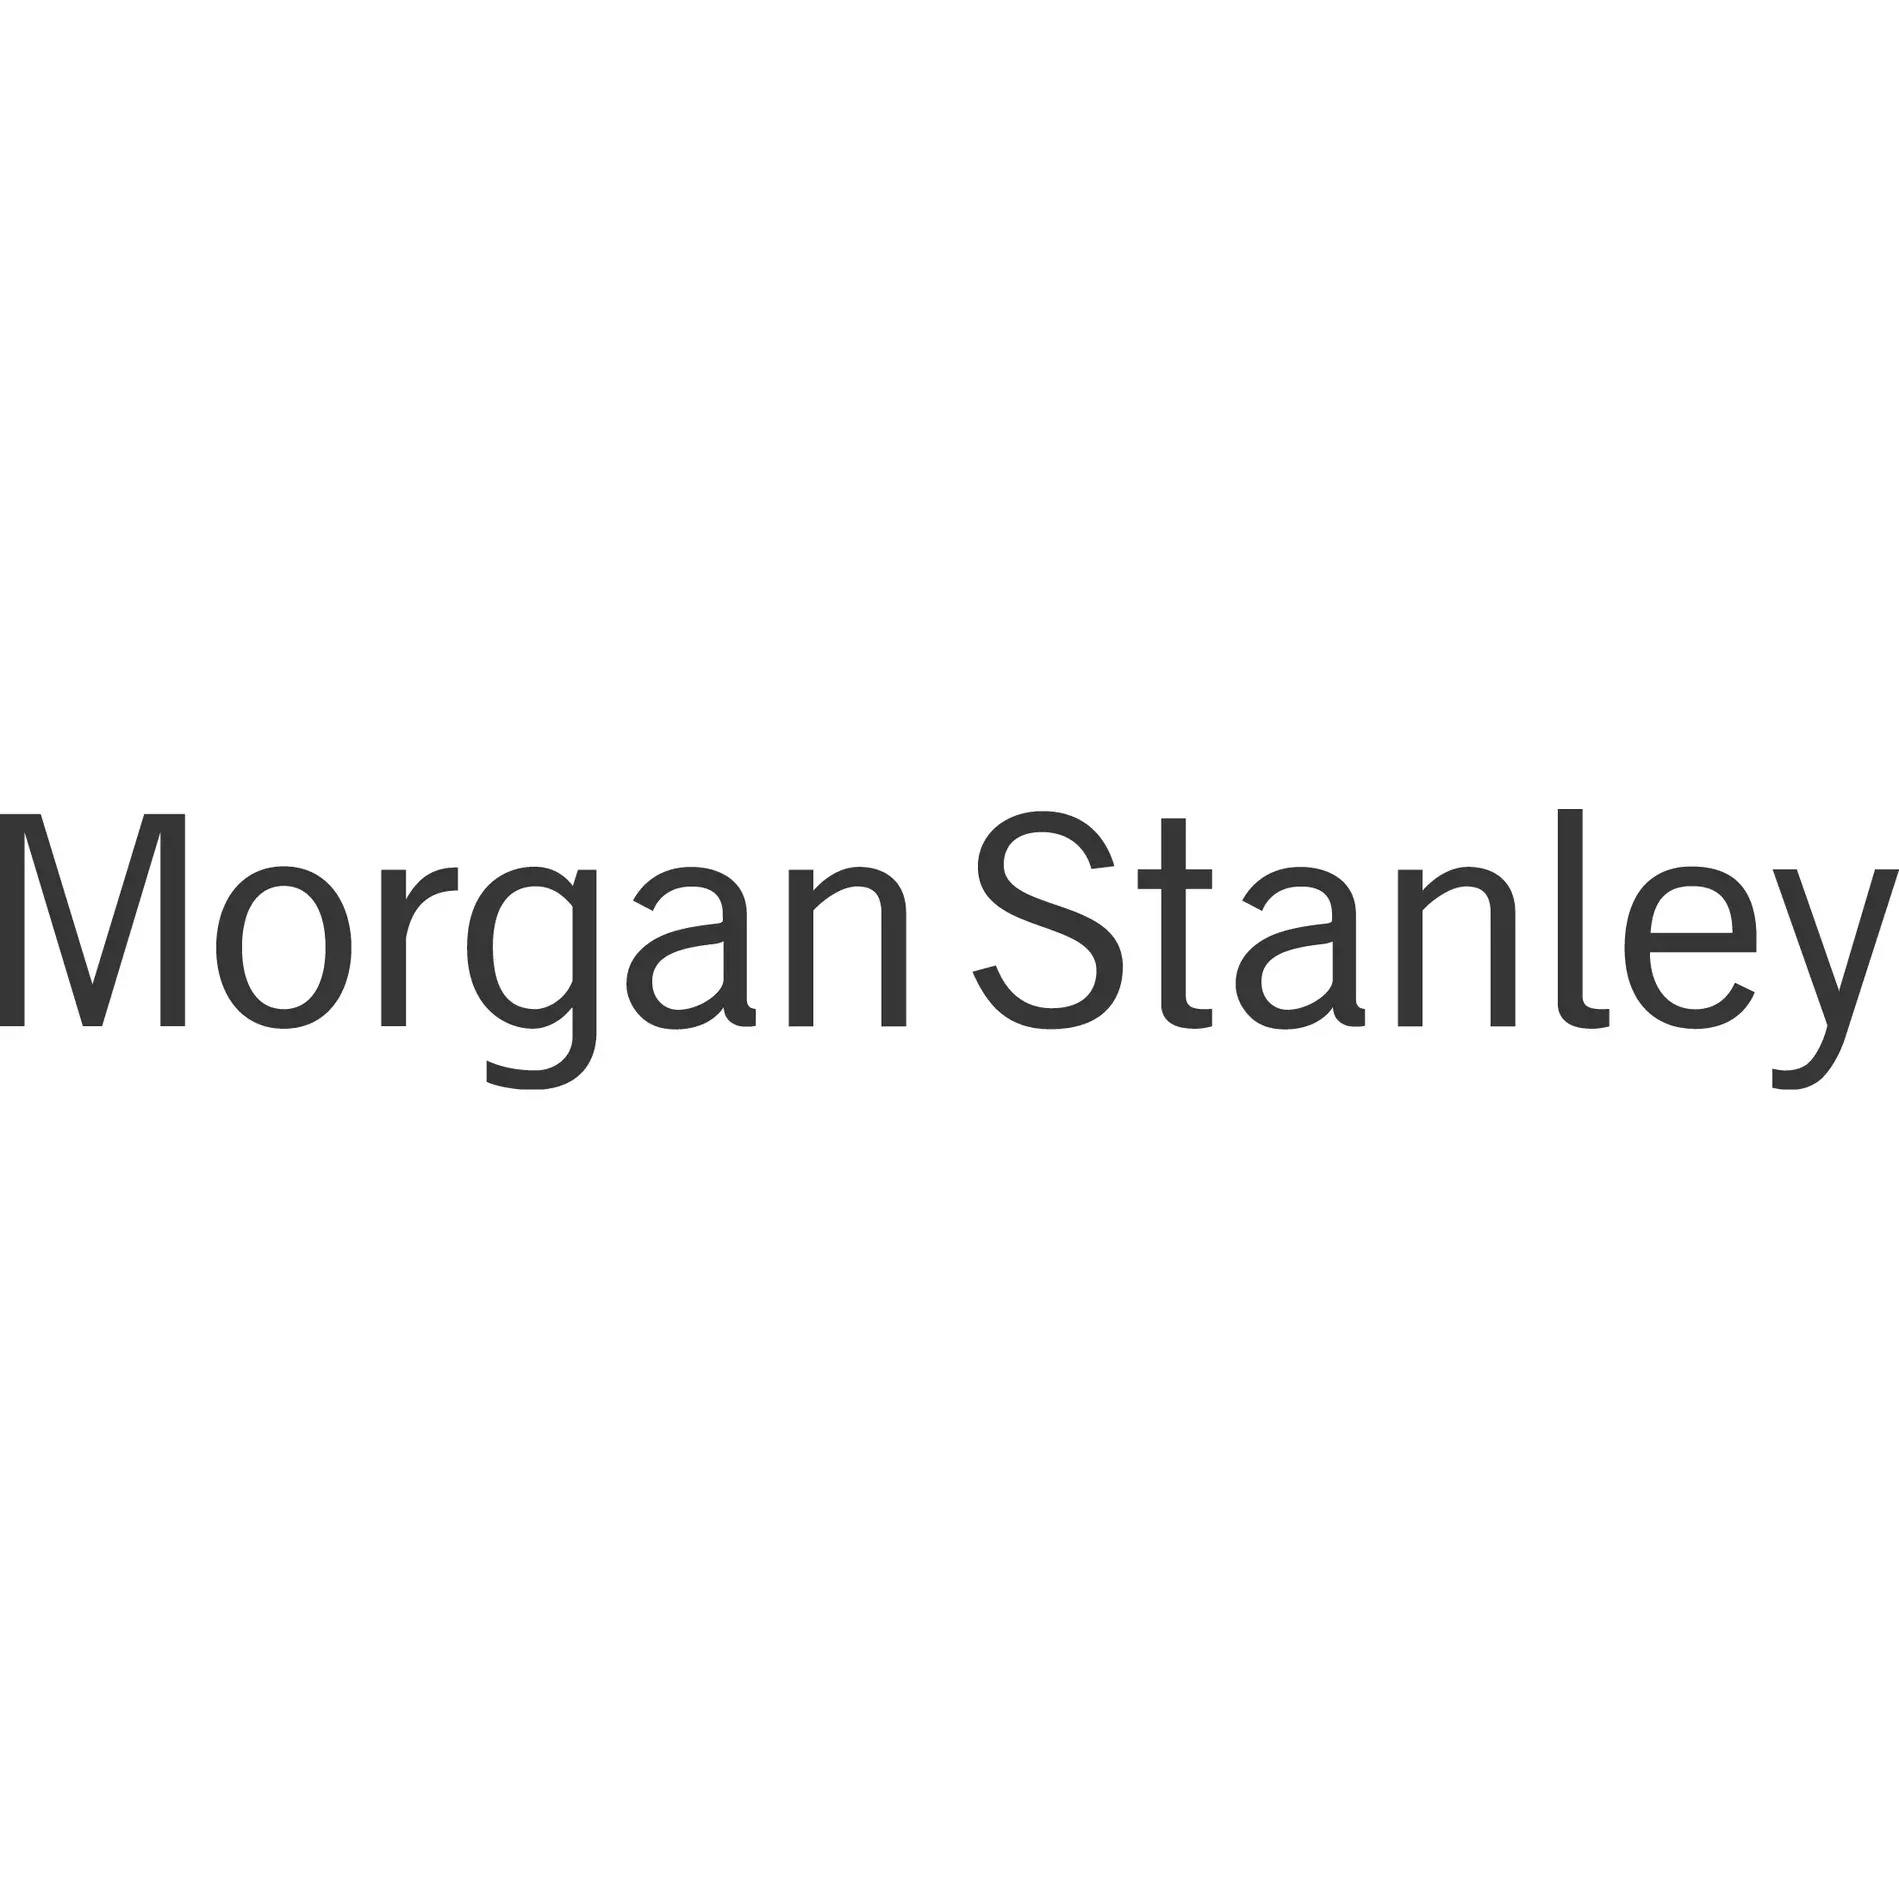 Allan Duff & Warren Duff - Morgan Stanley | Financial Advisor in Las Vegas,Nevada